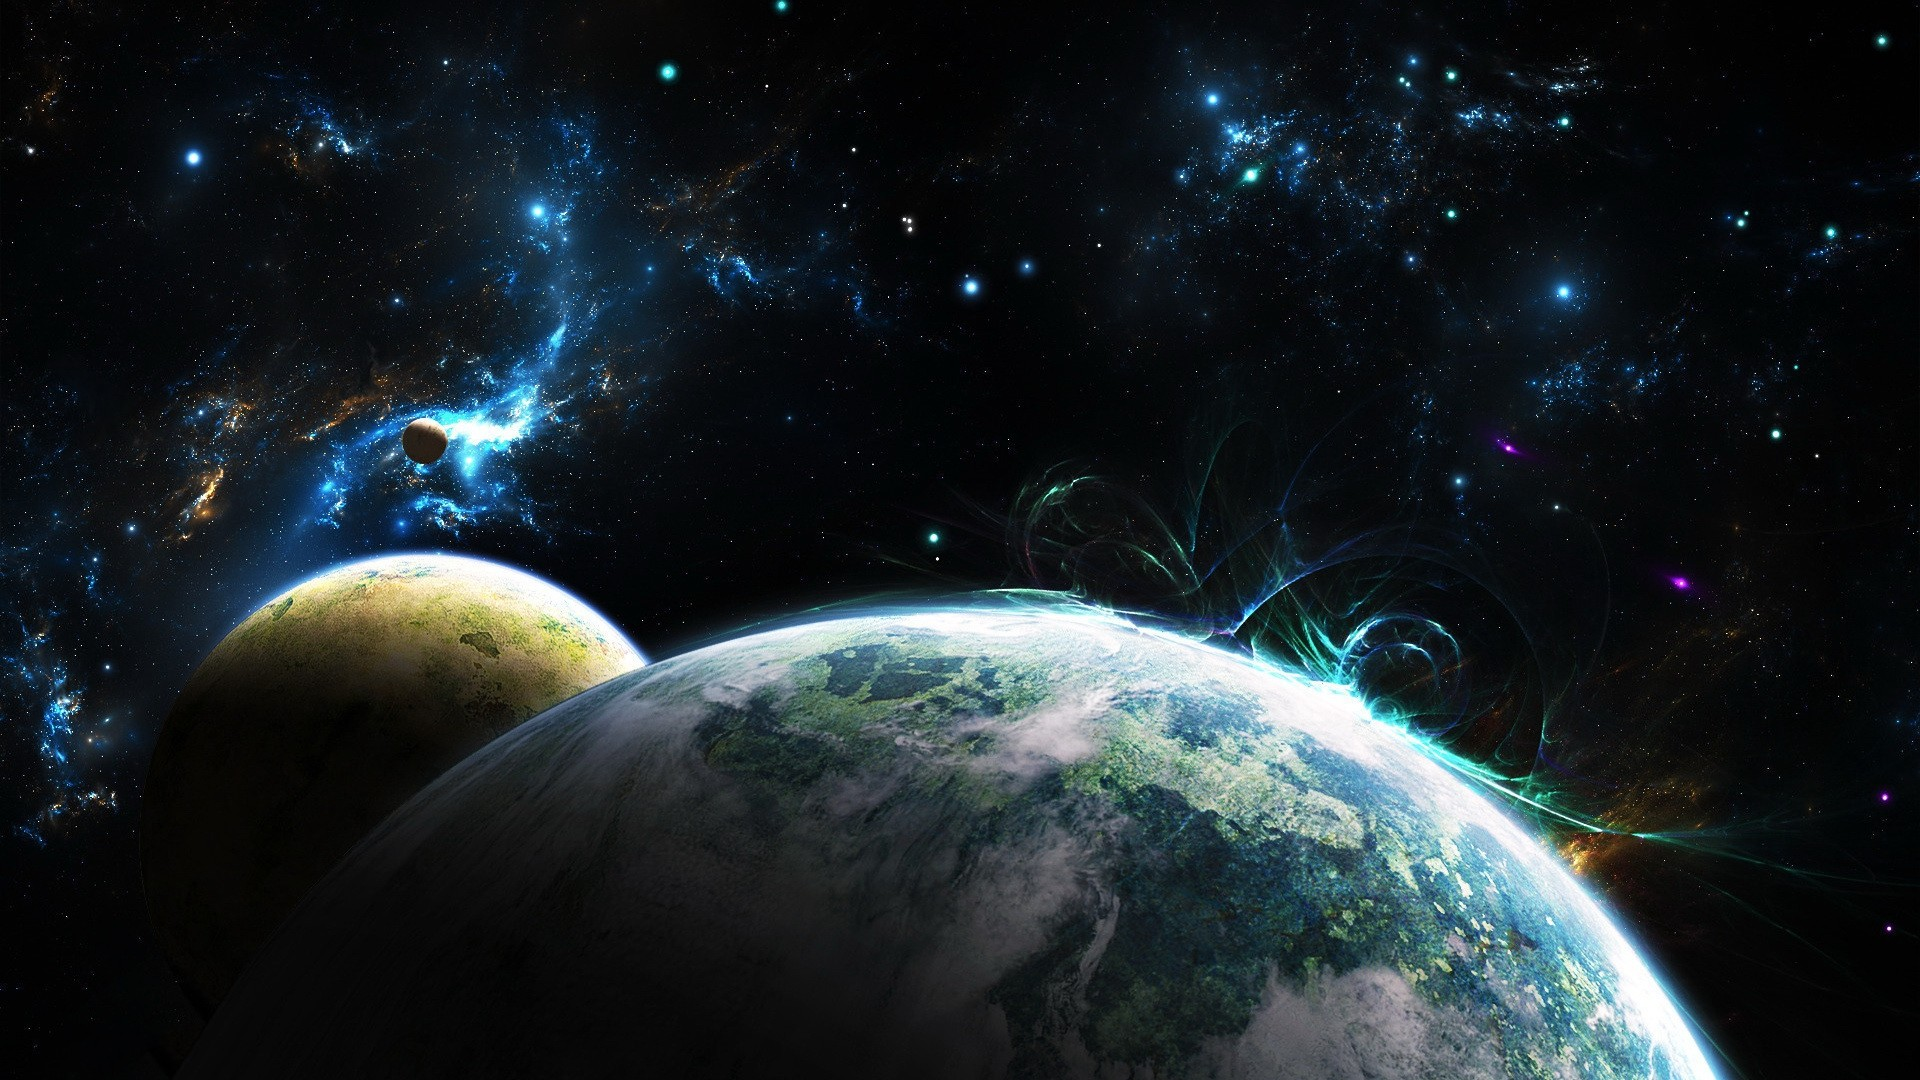 Deep space wallpaper 1920x1080 66 images - Space wallpaper hd 1920x1080 ...